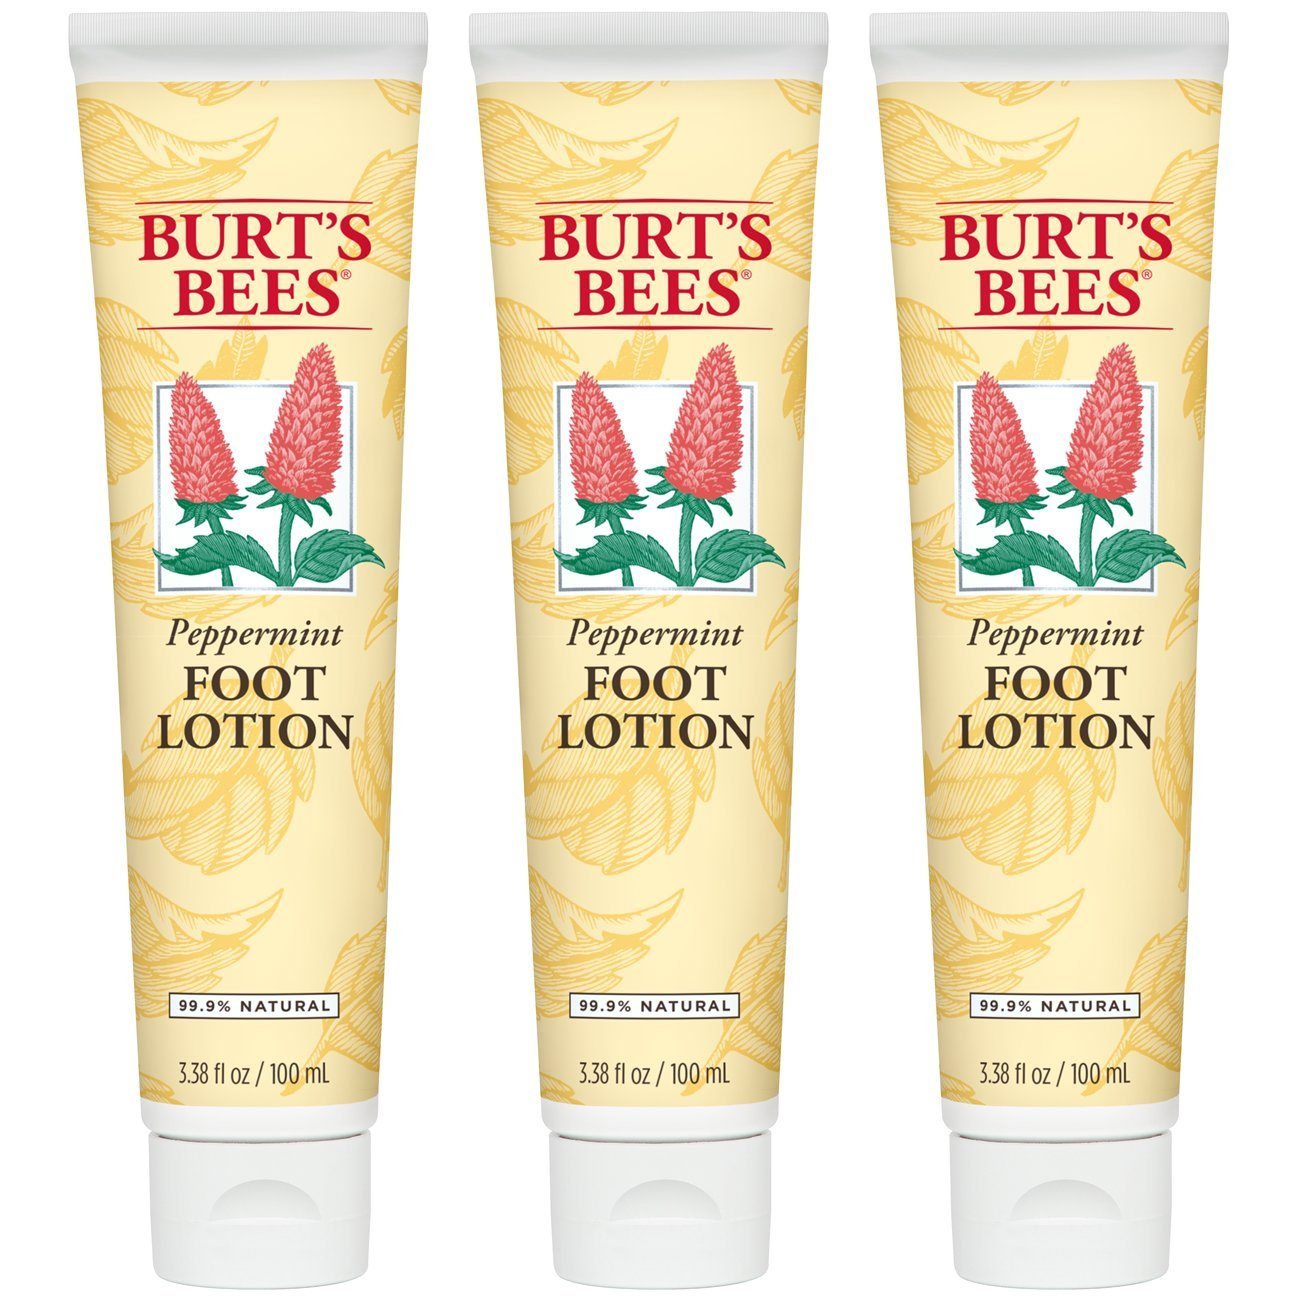 Burt's Bees Peppermint Foot Lotion - 3.38 Ounce Tube (Pack of 3) by Burt's Bees